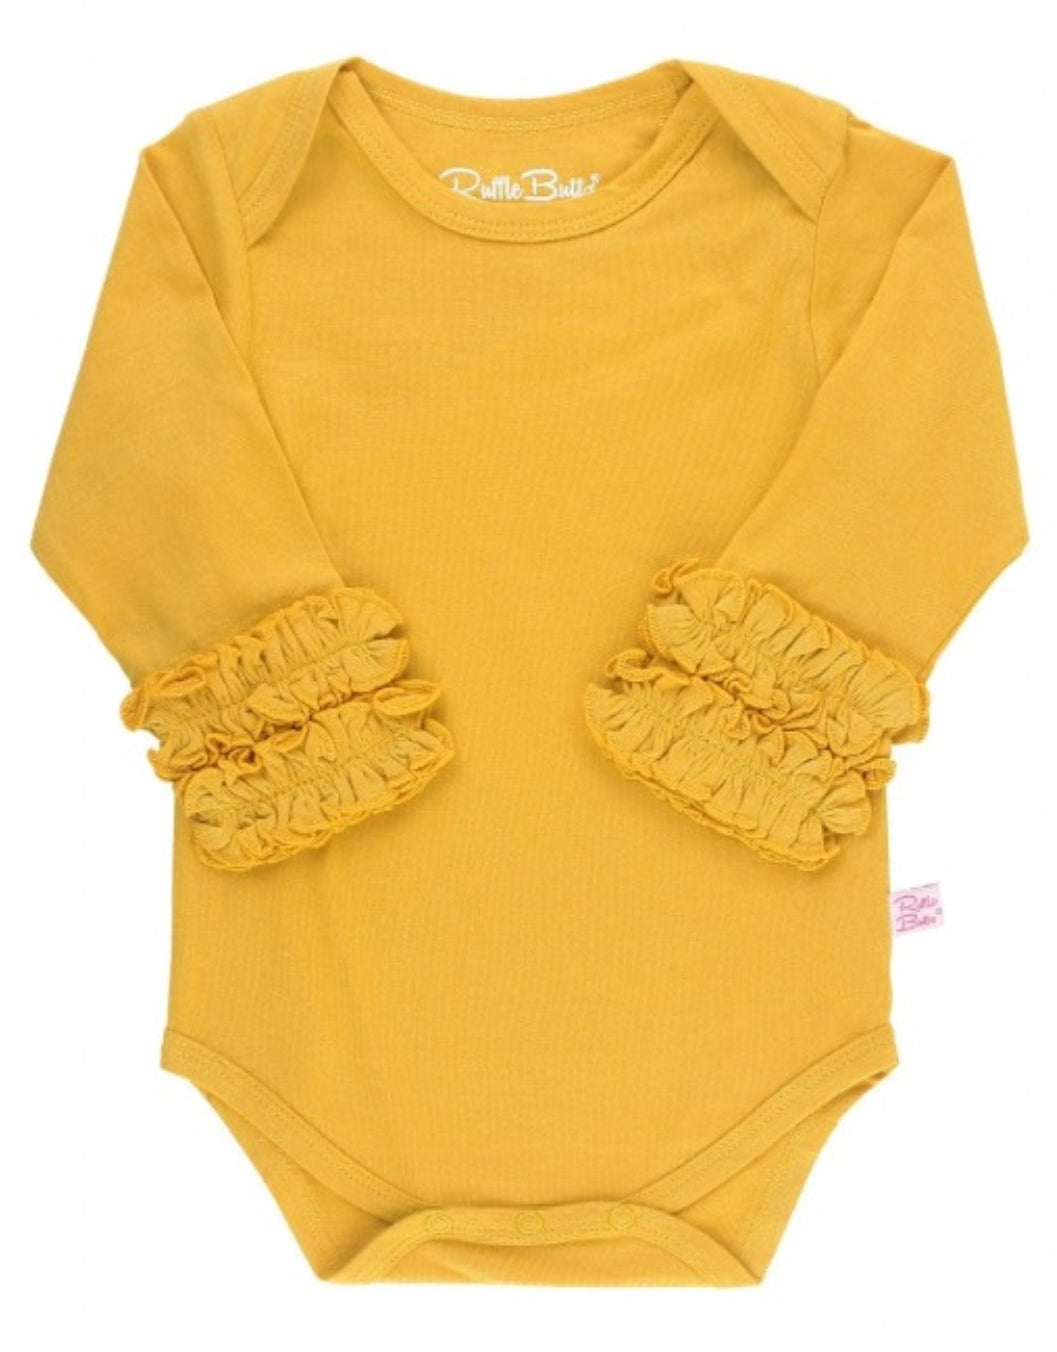 Ruffle Butts Golden Yellow Ruffled Long Sleeve Layering Bodysuit